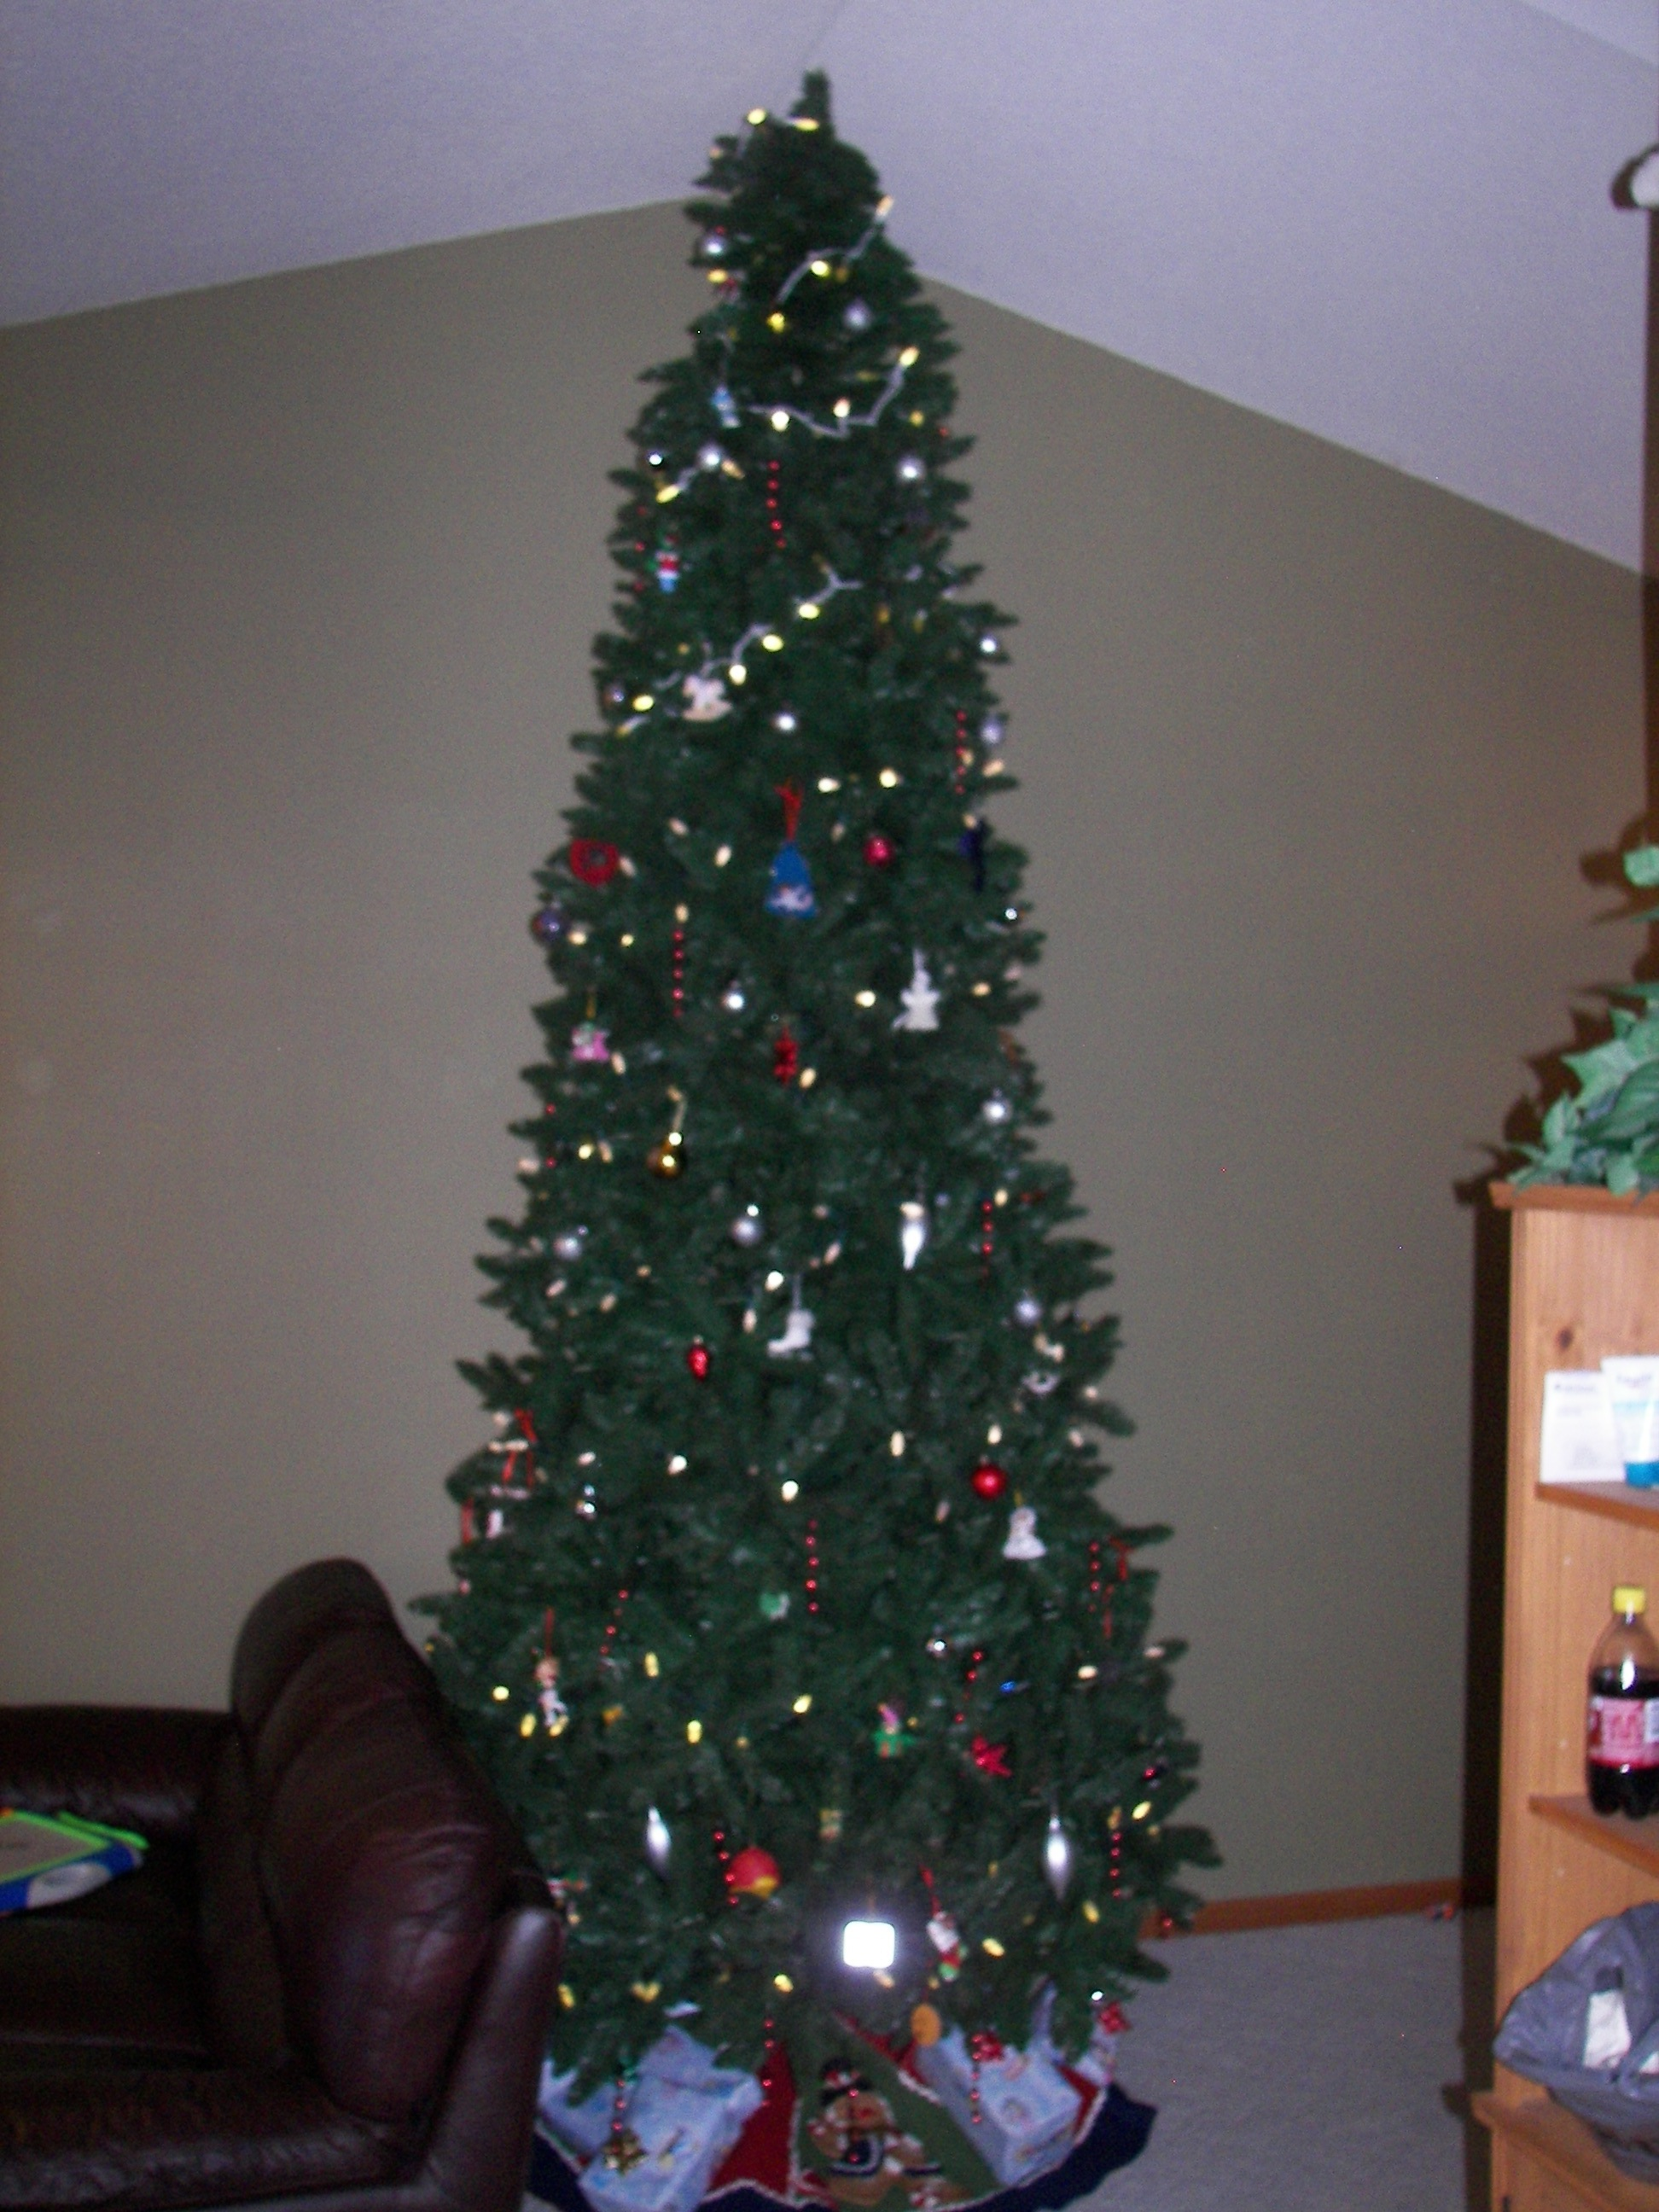 12 Foot Christmas Tree.The Story Of The 12 Foot Christmas Tree Anthony And Kayla